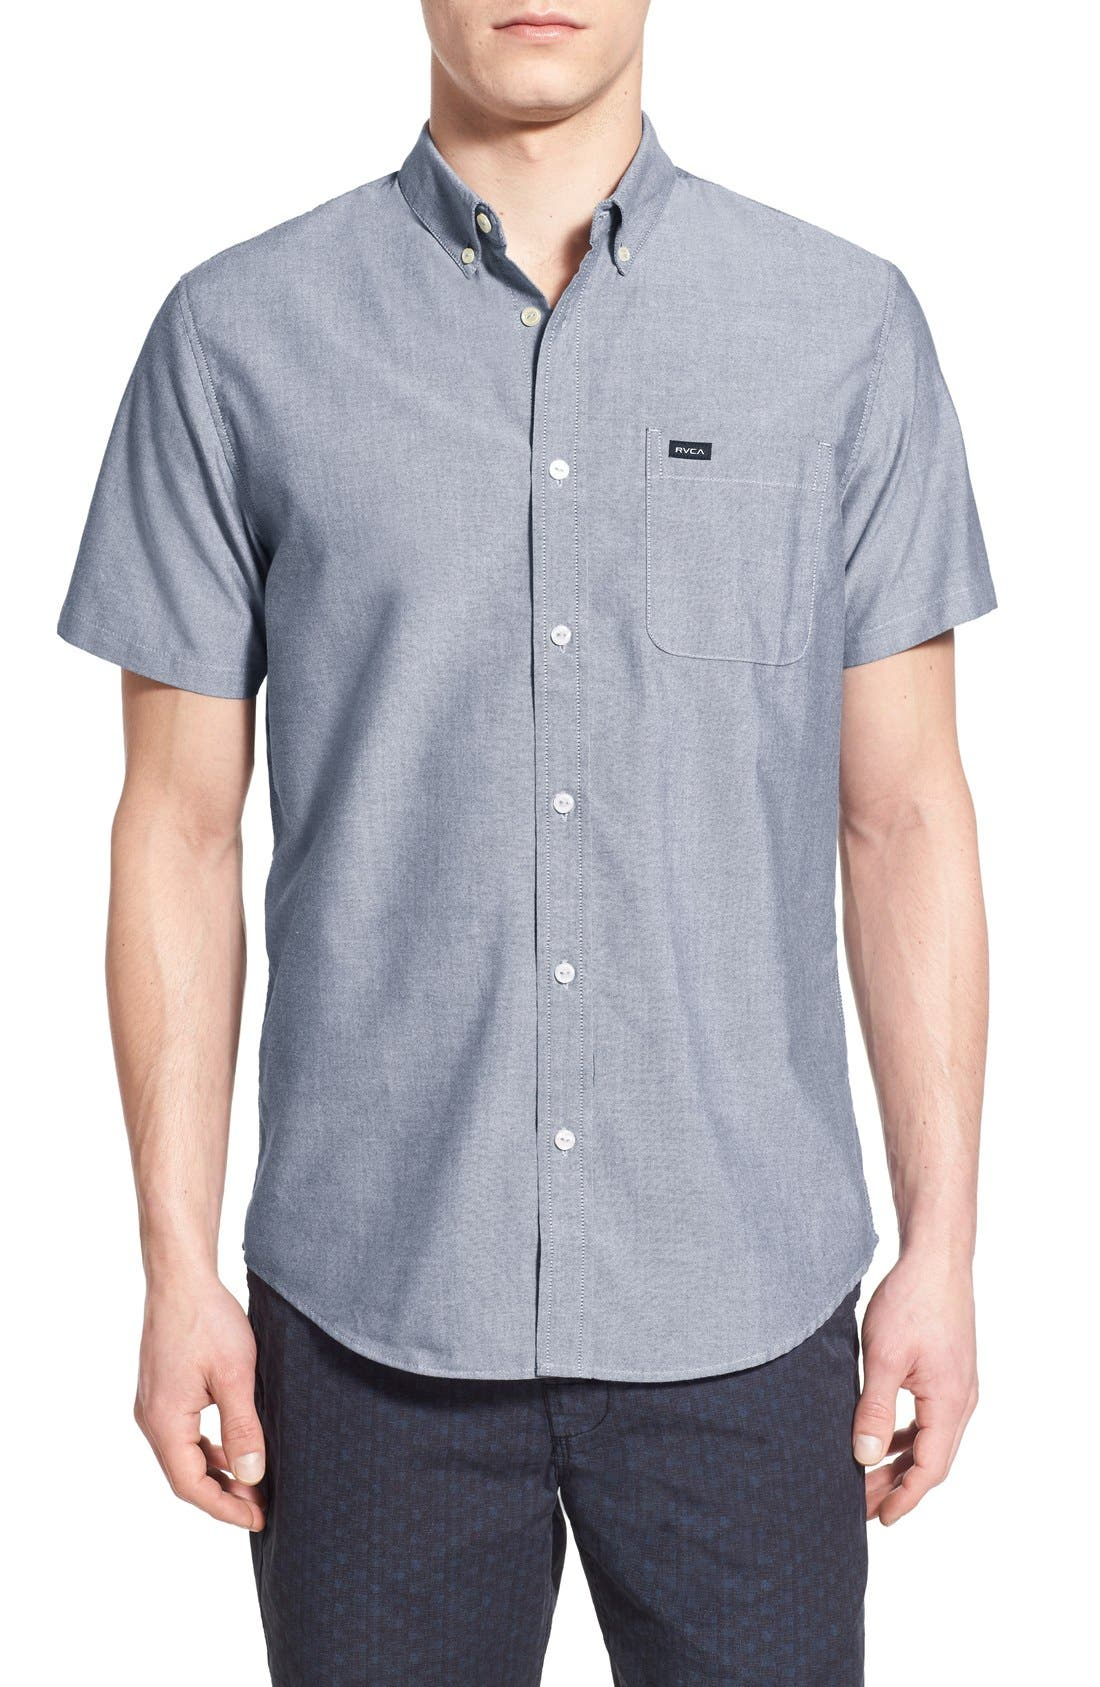 Alternate Image 1 Selected - RVCA 'That'll Do' Slim Fit Short Sleeve Oxford Shirt